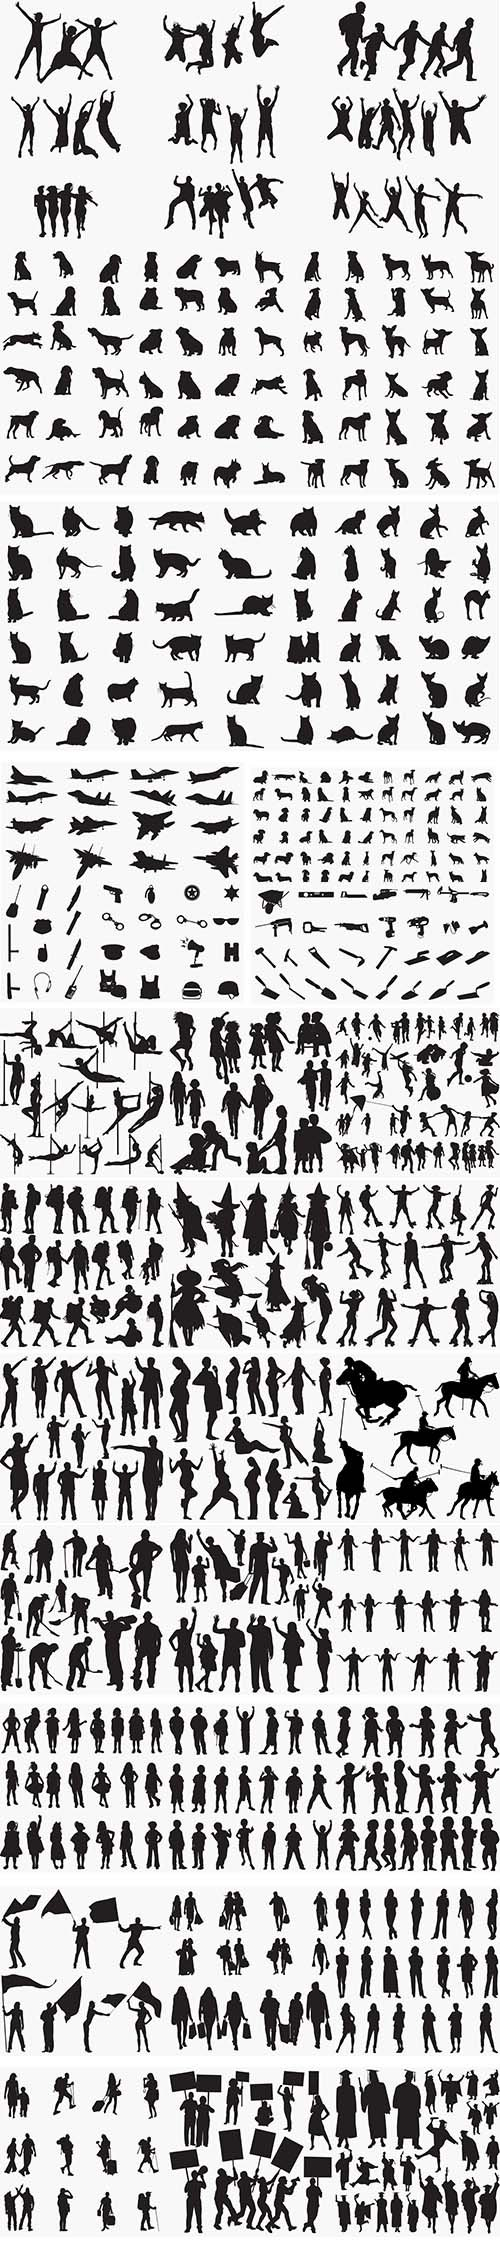 29 Black Silhouettes Vector Pack